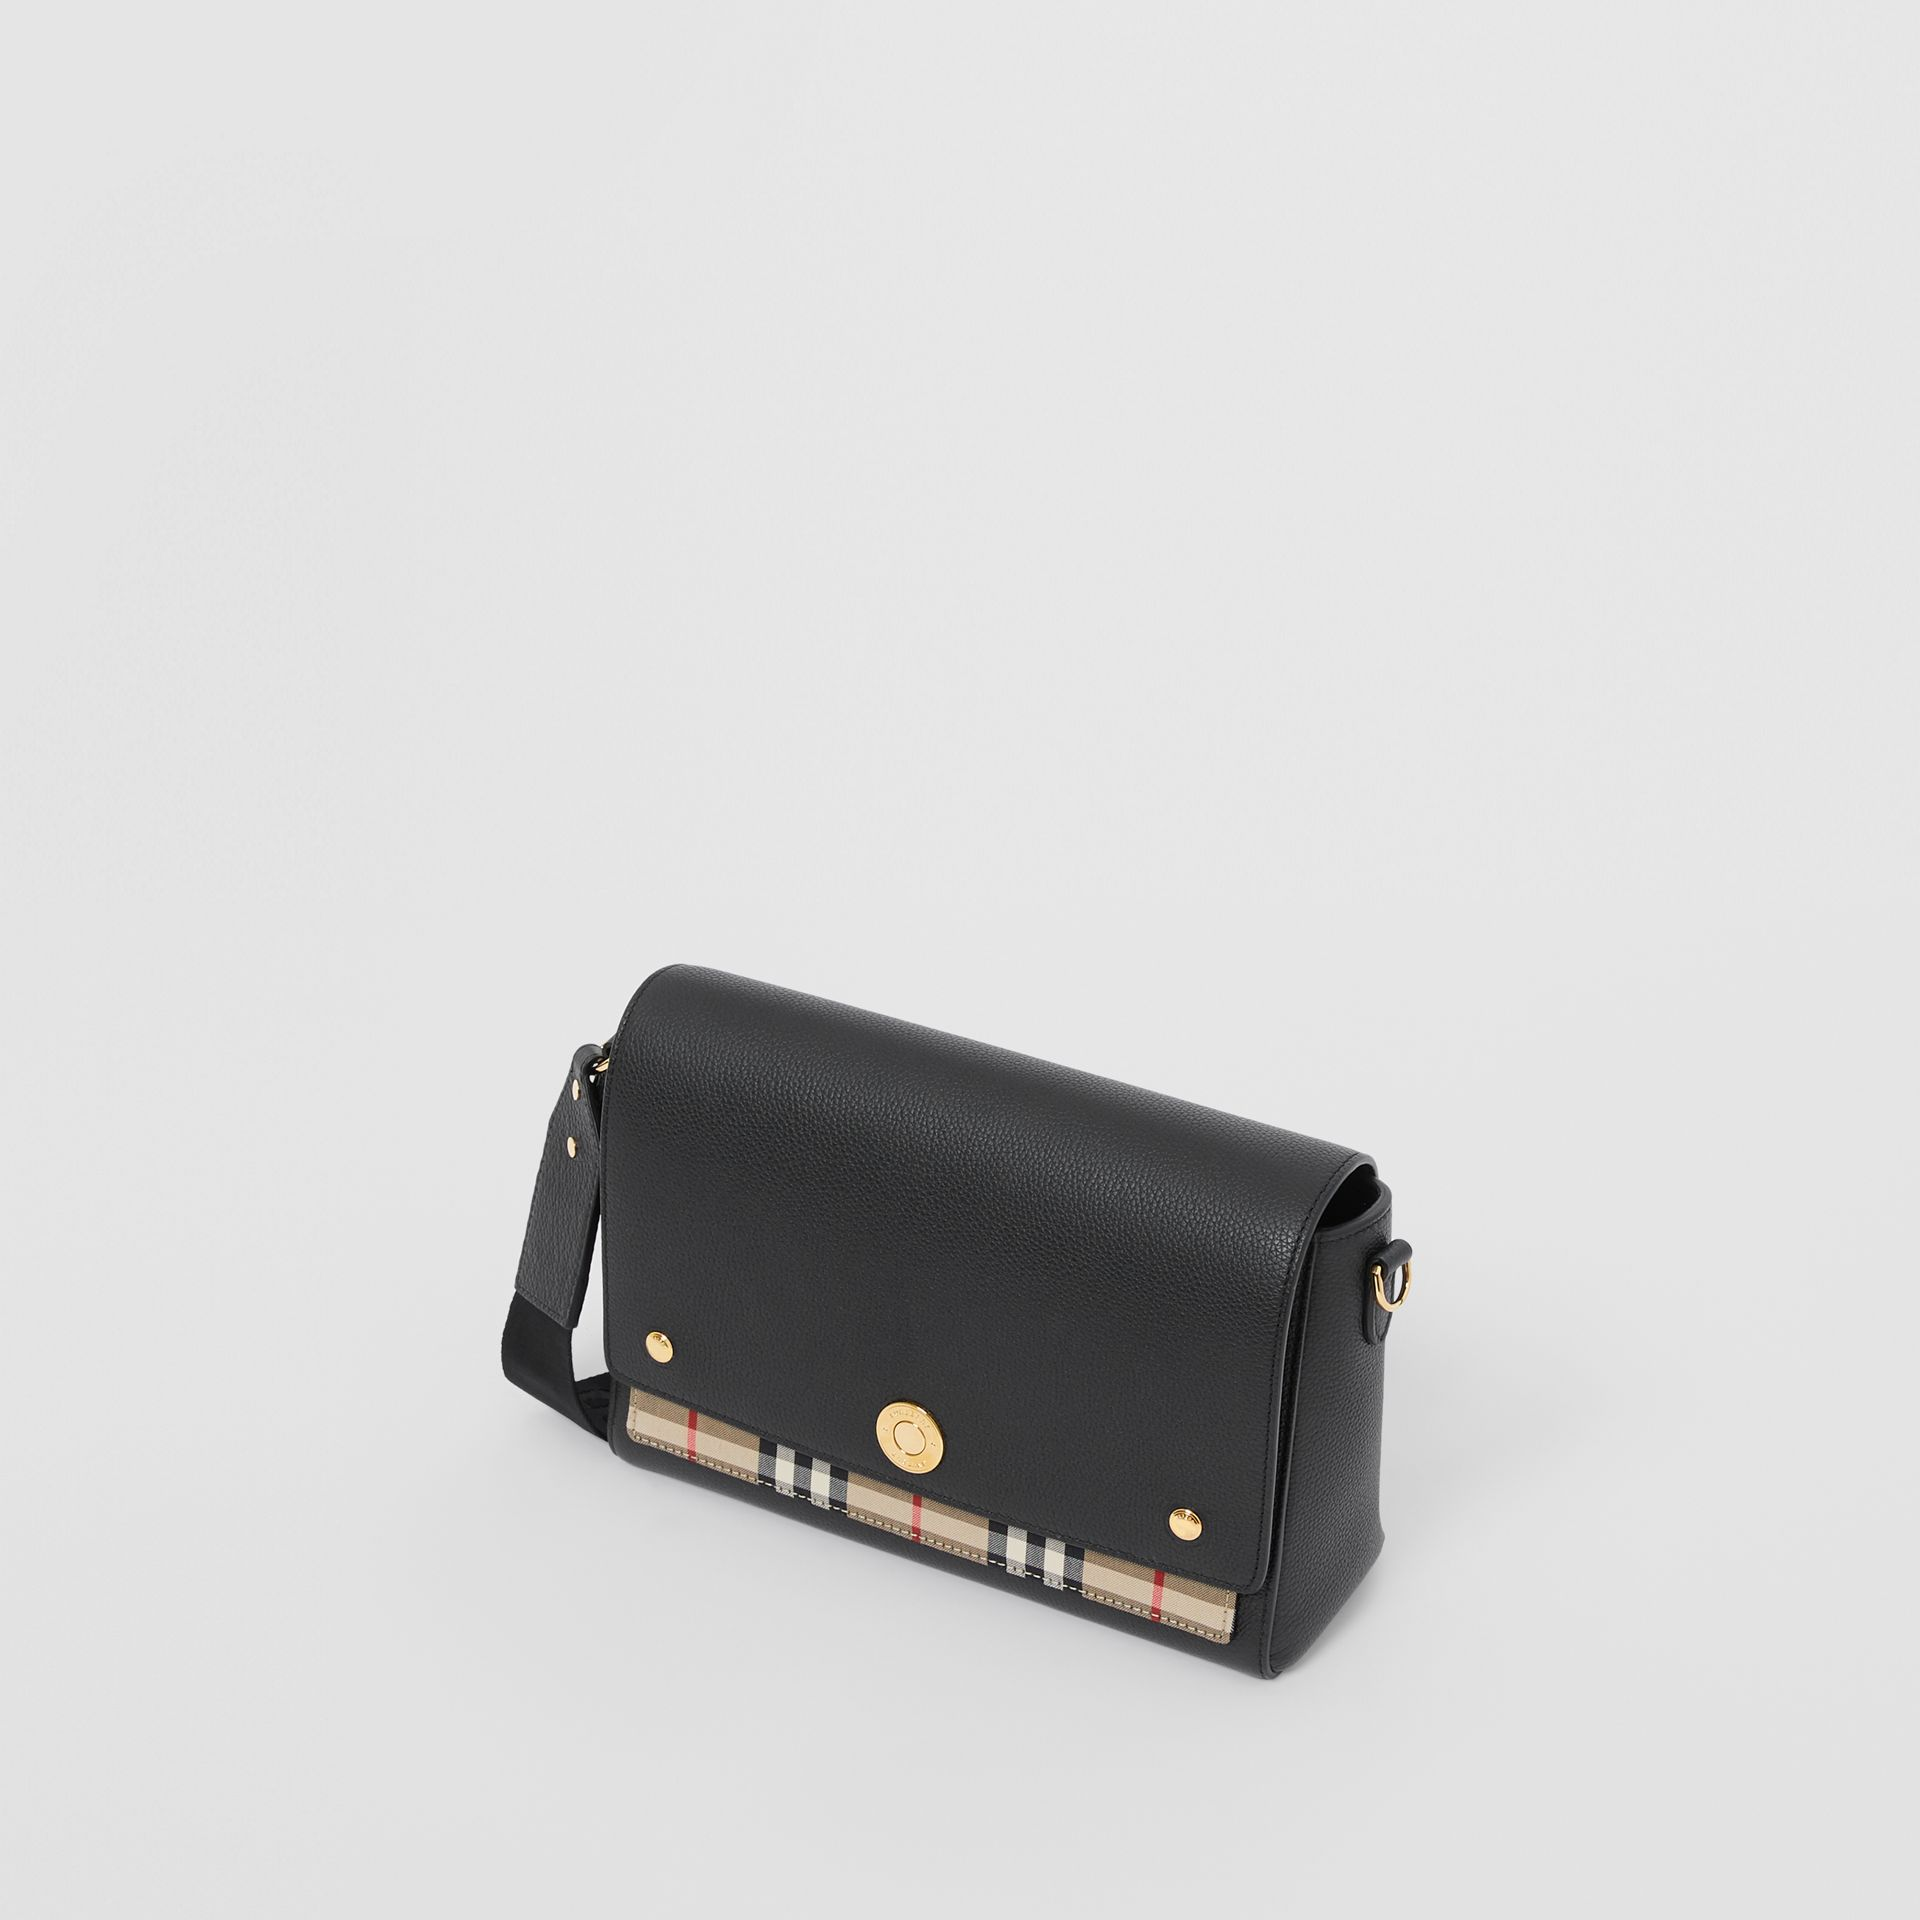 Leather and Vintage Check Note Crossbody Bag in Black - Women | Burberry United Kingdom - gallery image 3